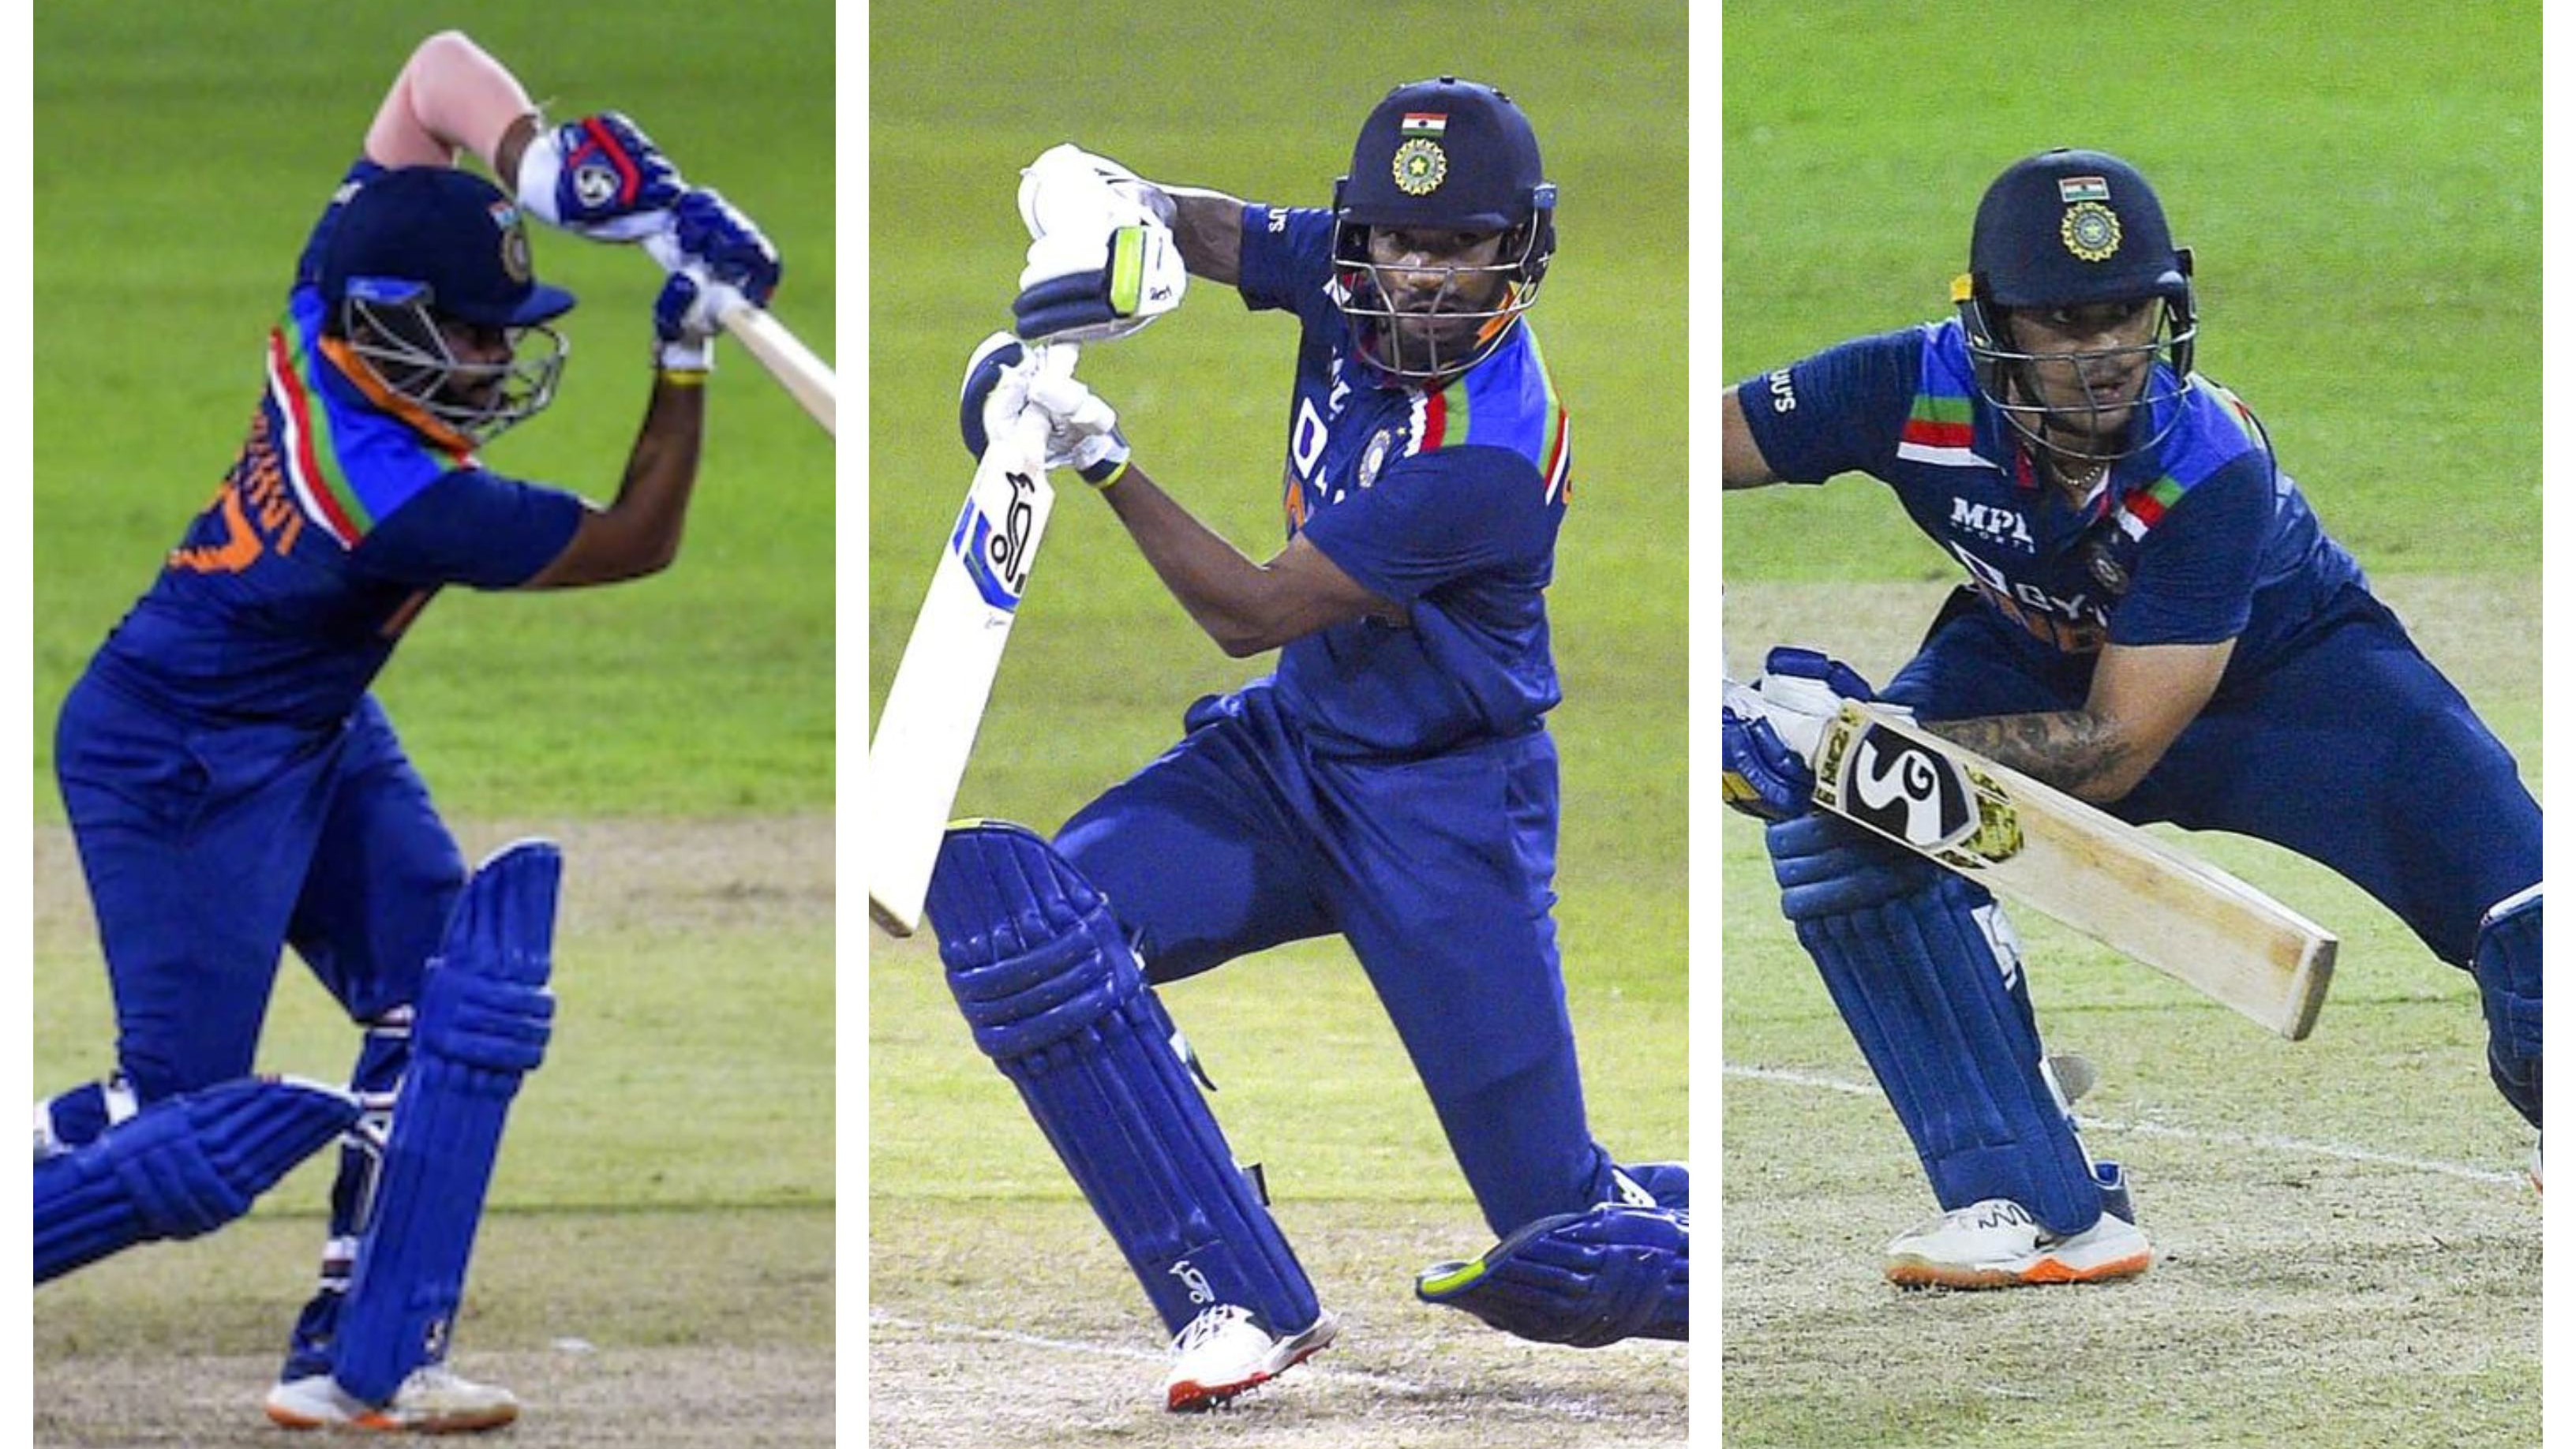 """SL v IND 2021: """"Prithvi and Ishan finished the game in first 15 overs"""", Shikhar Dhawan after huge win in 1st ODI"""